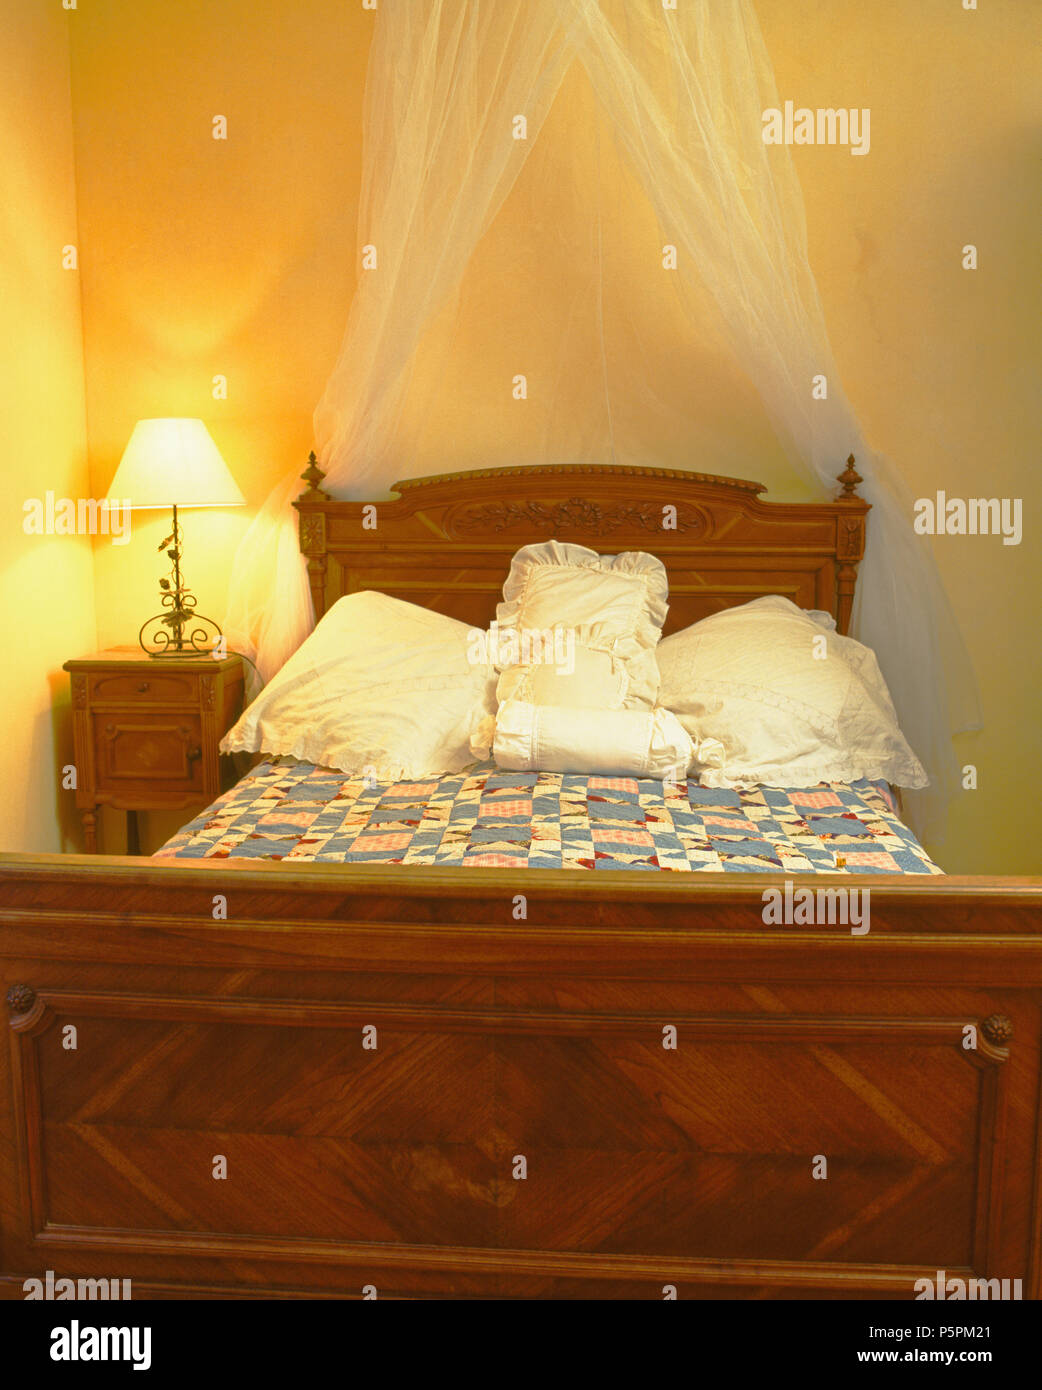 Lighted Lamp On Table Beside Vintage Wooden Bed With White Cushions And White Voile Drapes In Yellow Country Bedroom Stock Photo Alamy